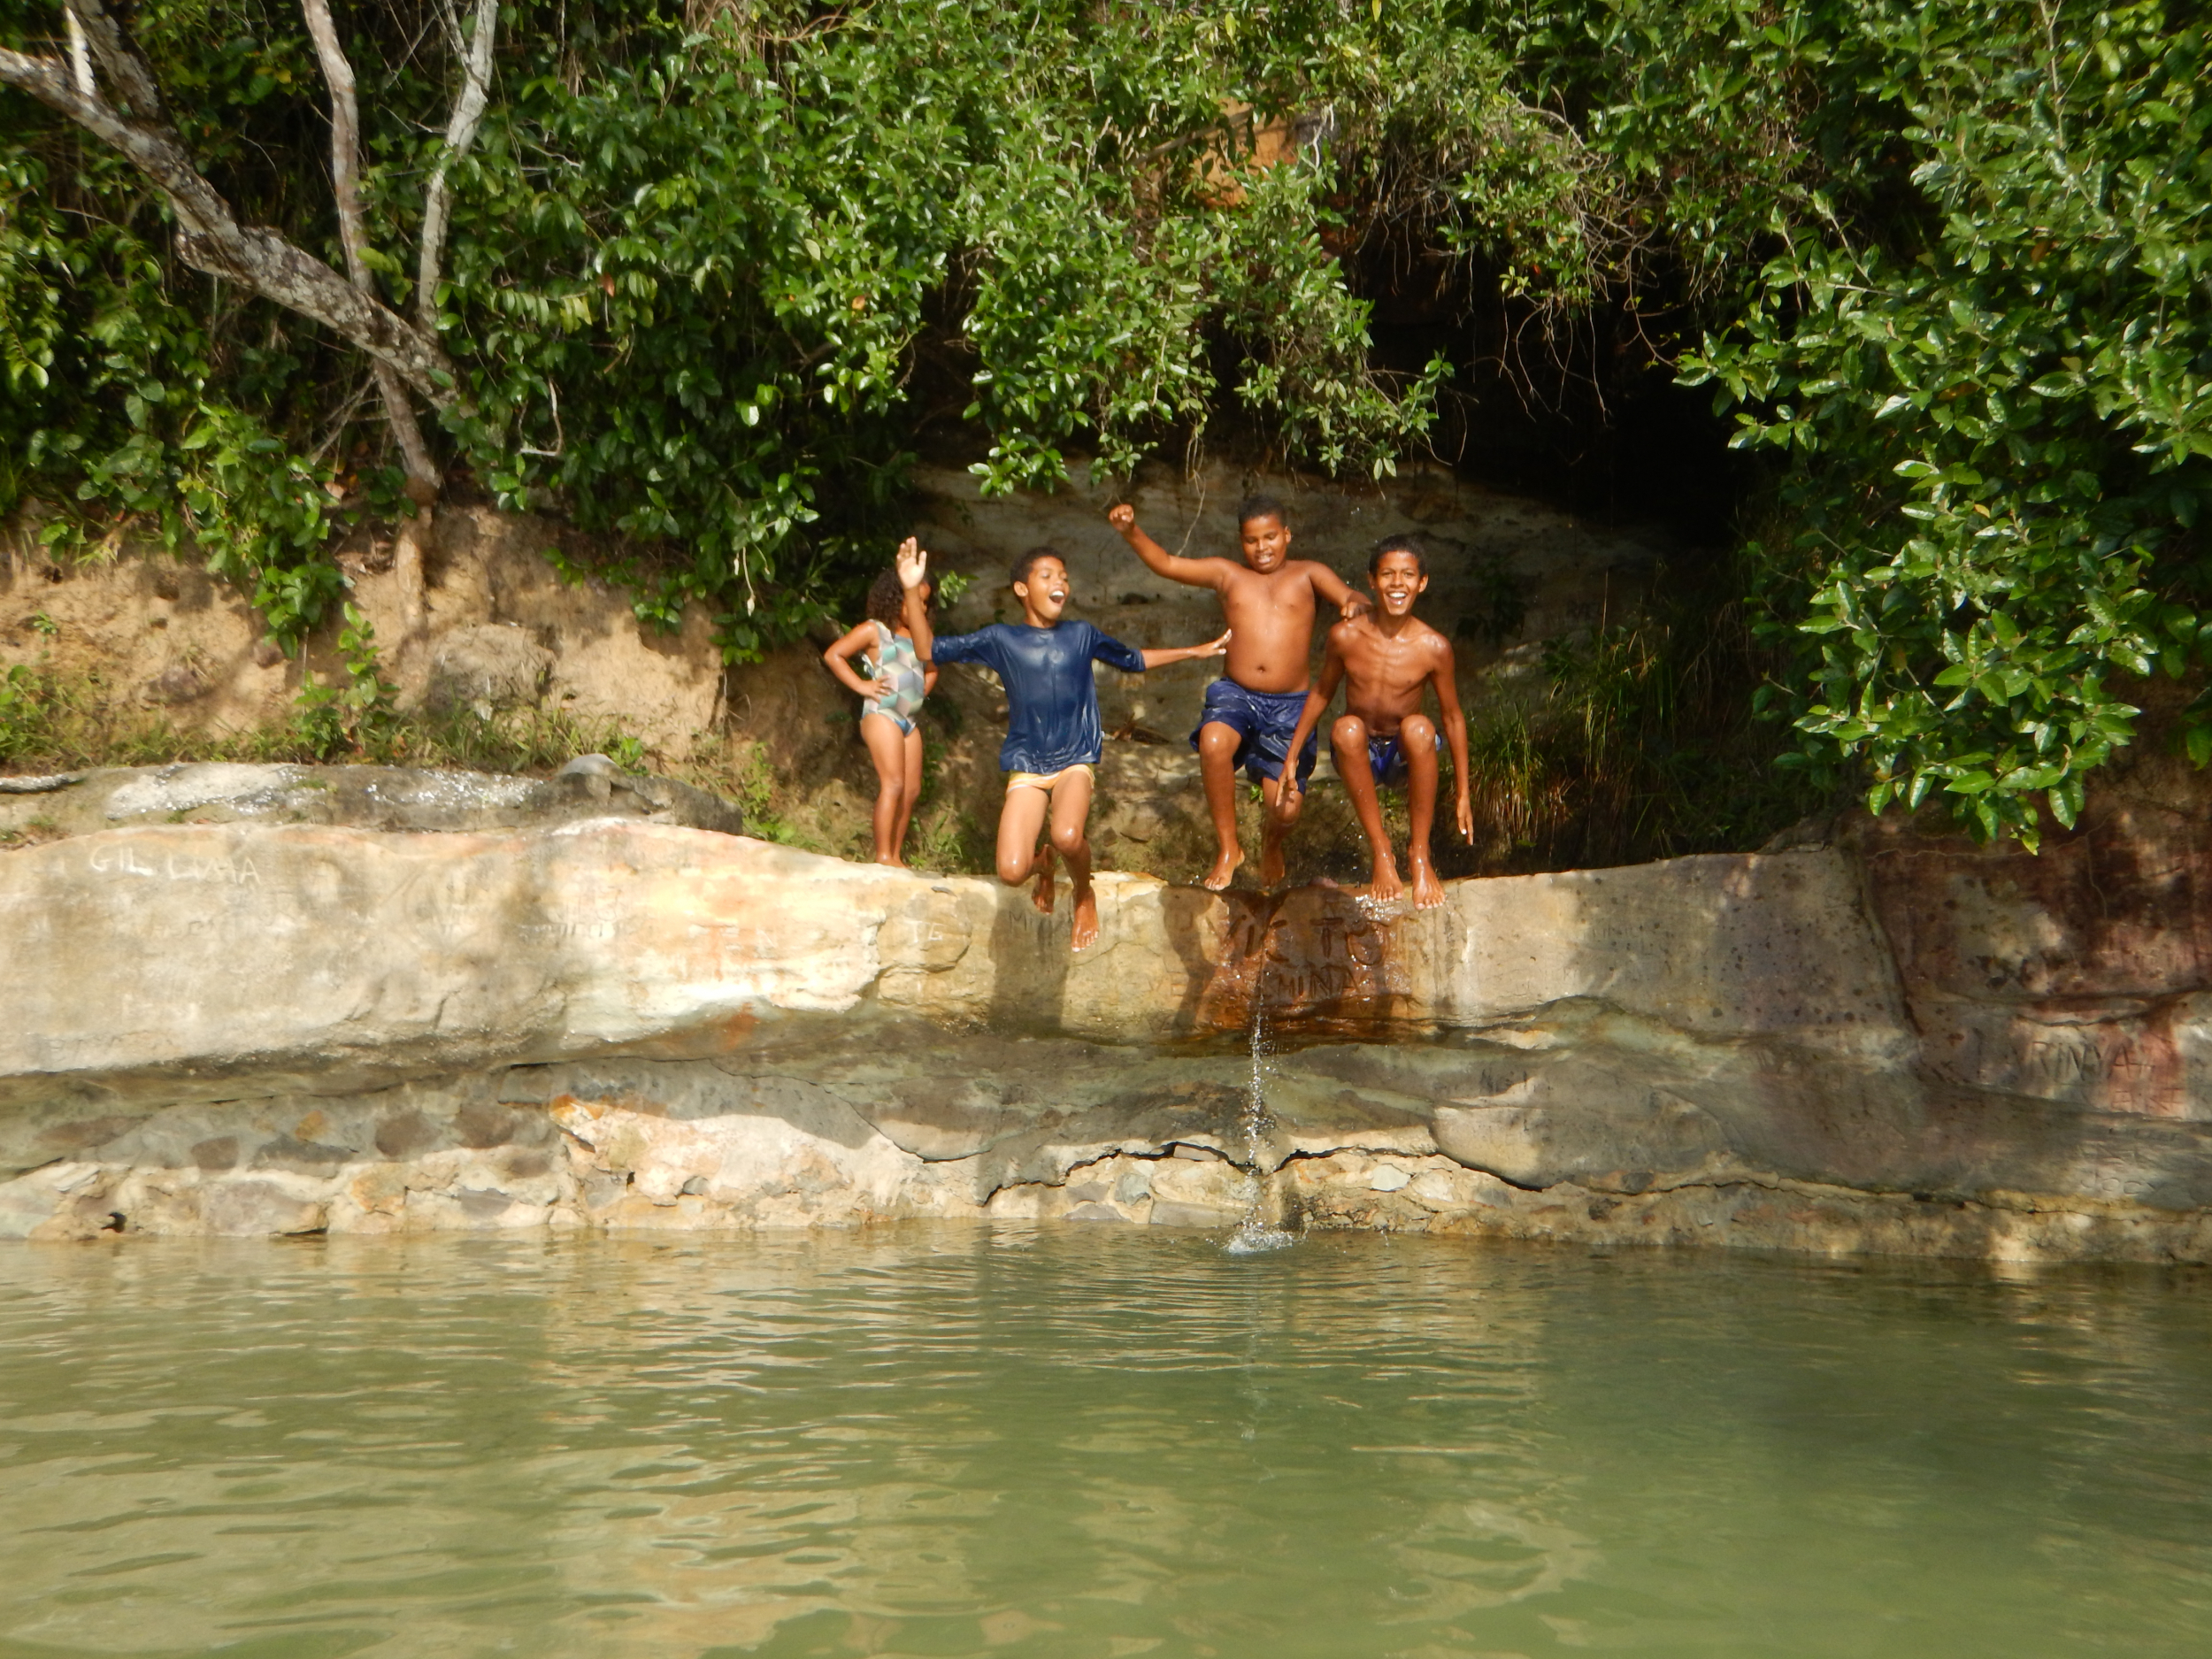 34. Local swimming hole, we were joined by a fisherman and his kids